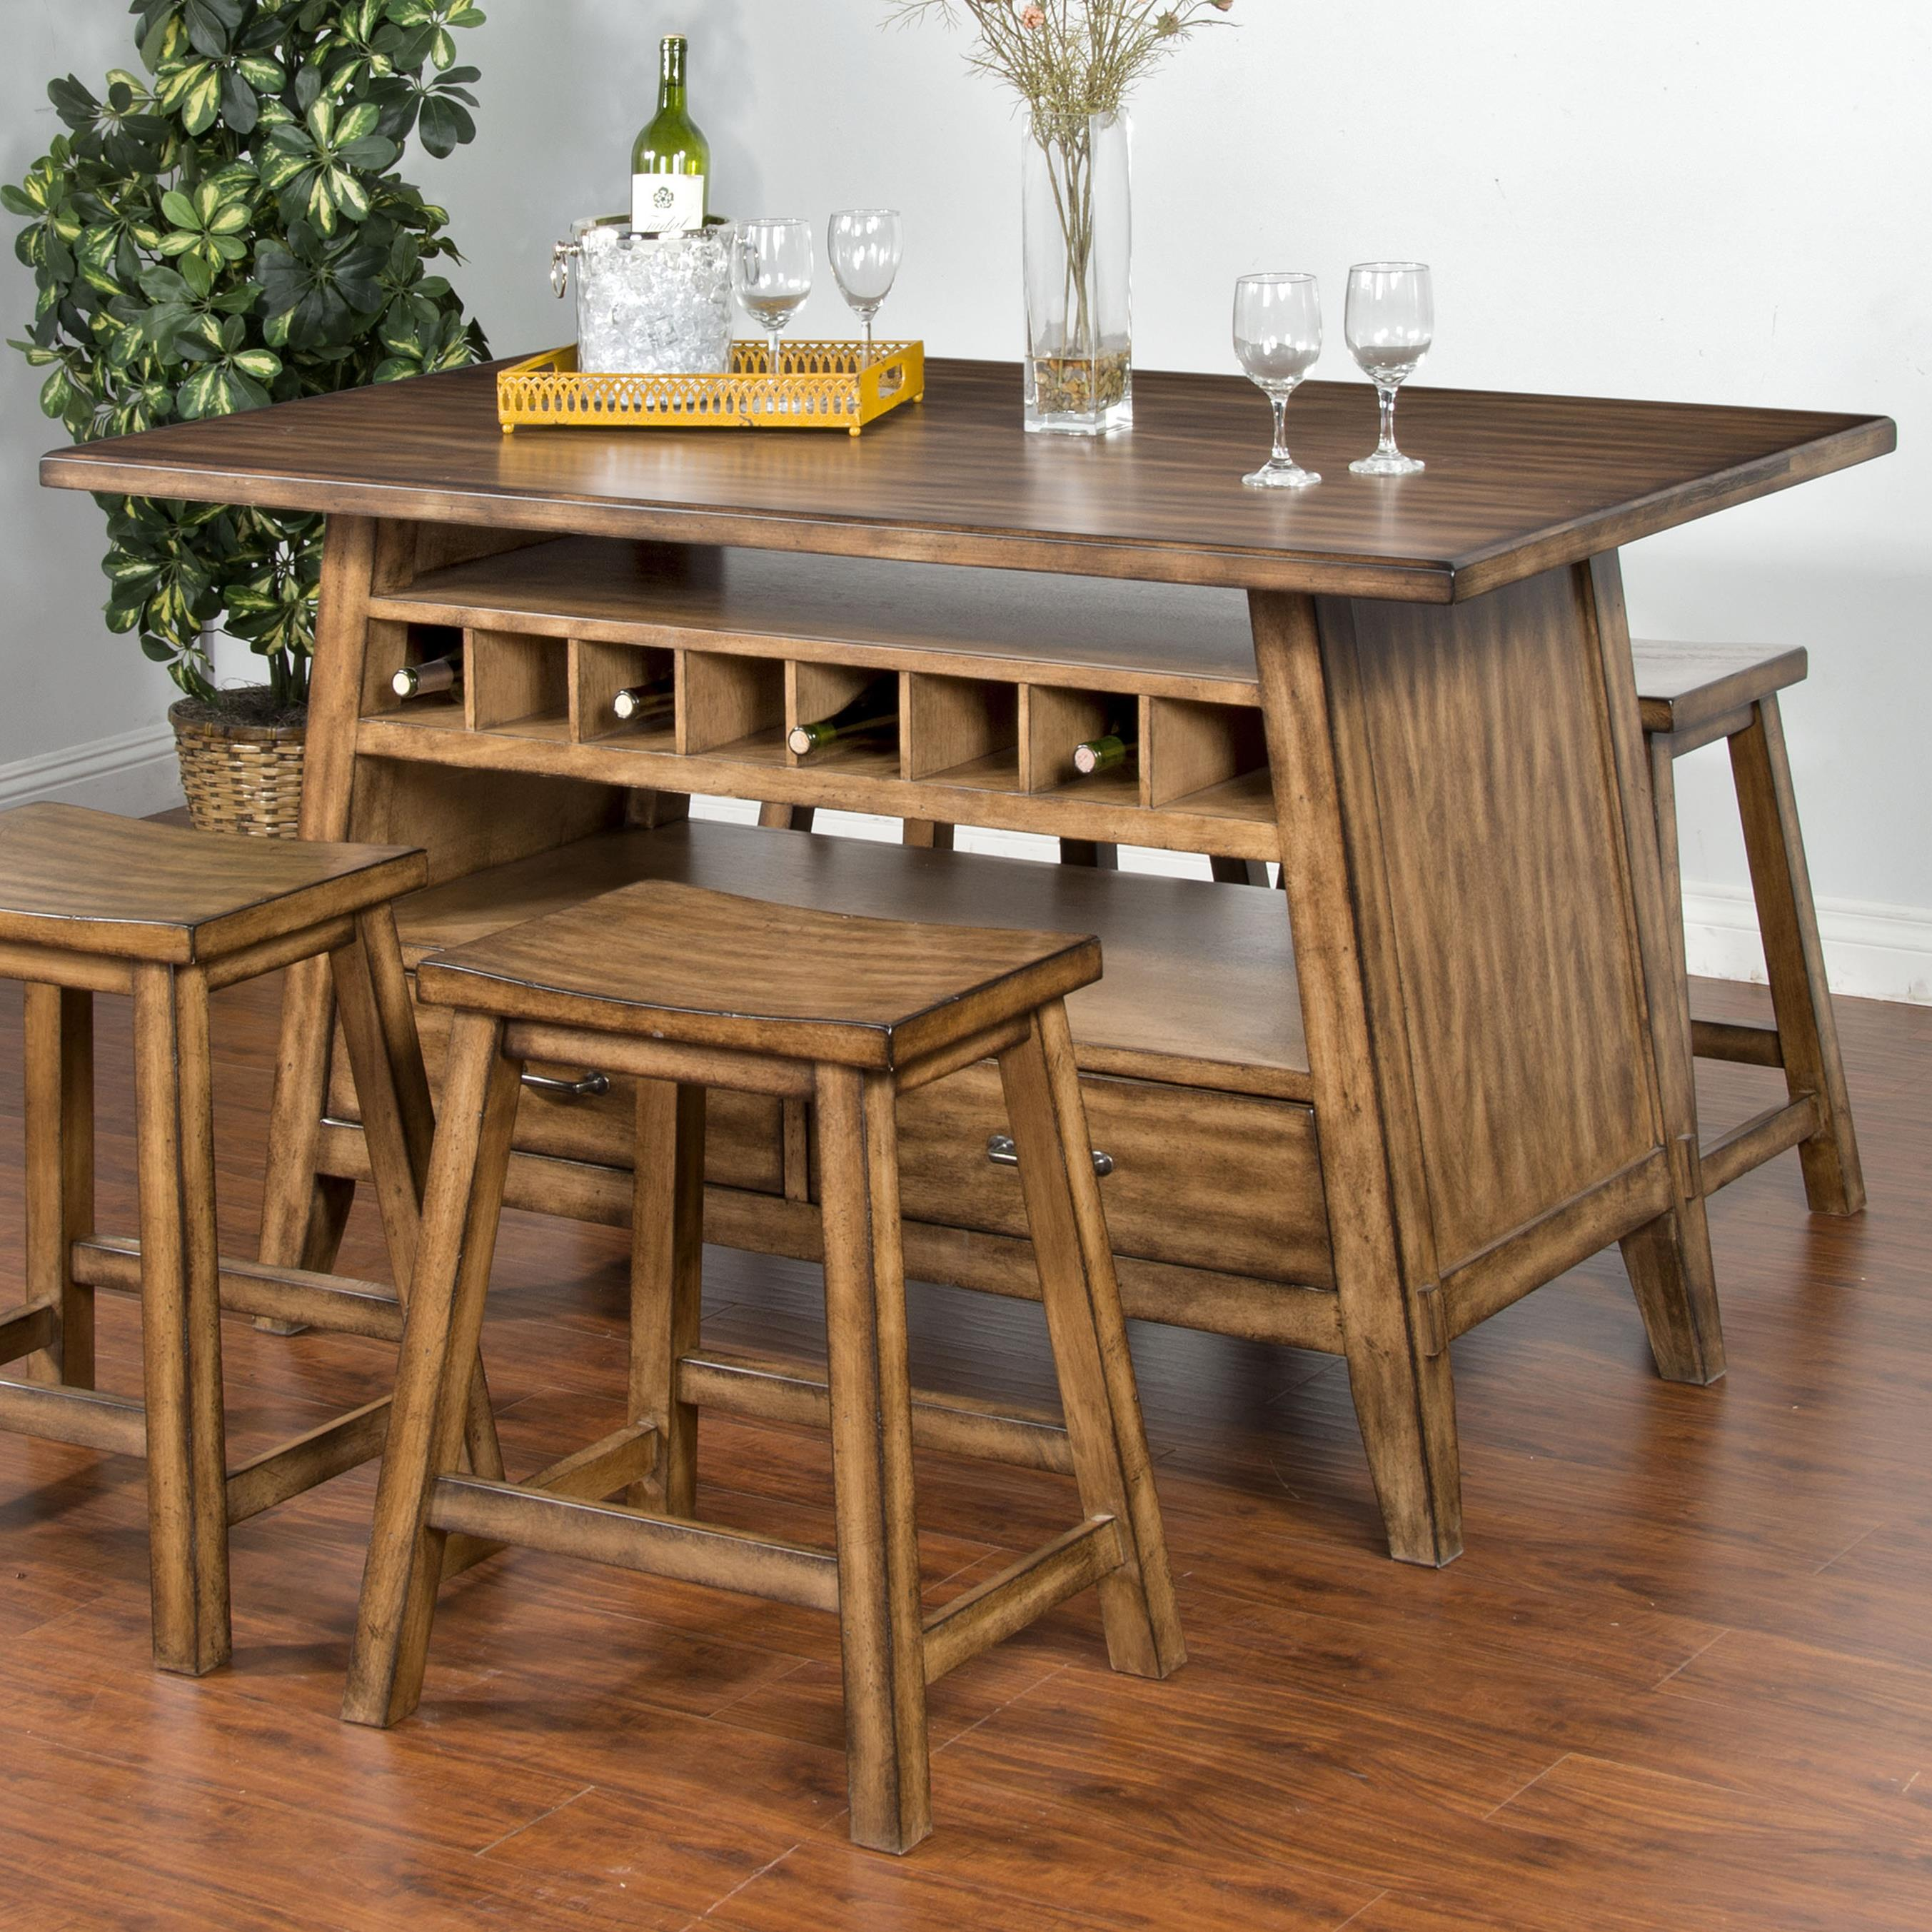 Sunny Designs Cornerstone Table with Storage Base - Item Number: 1398BM